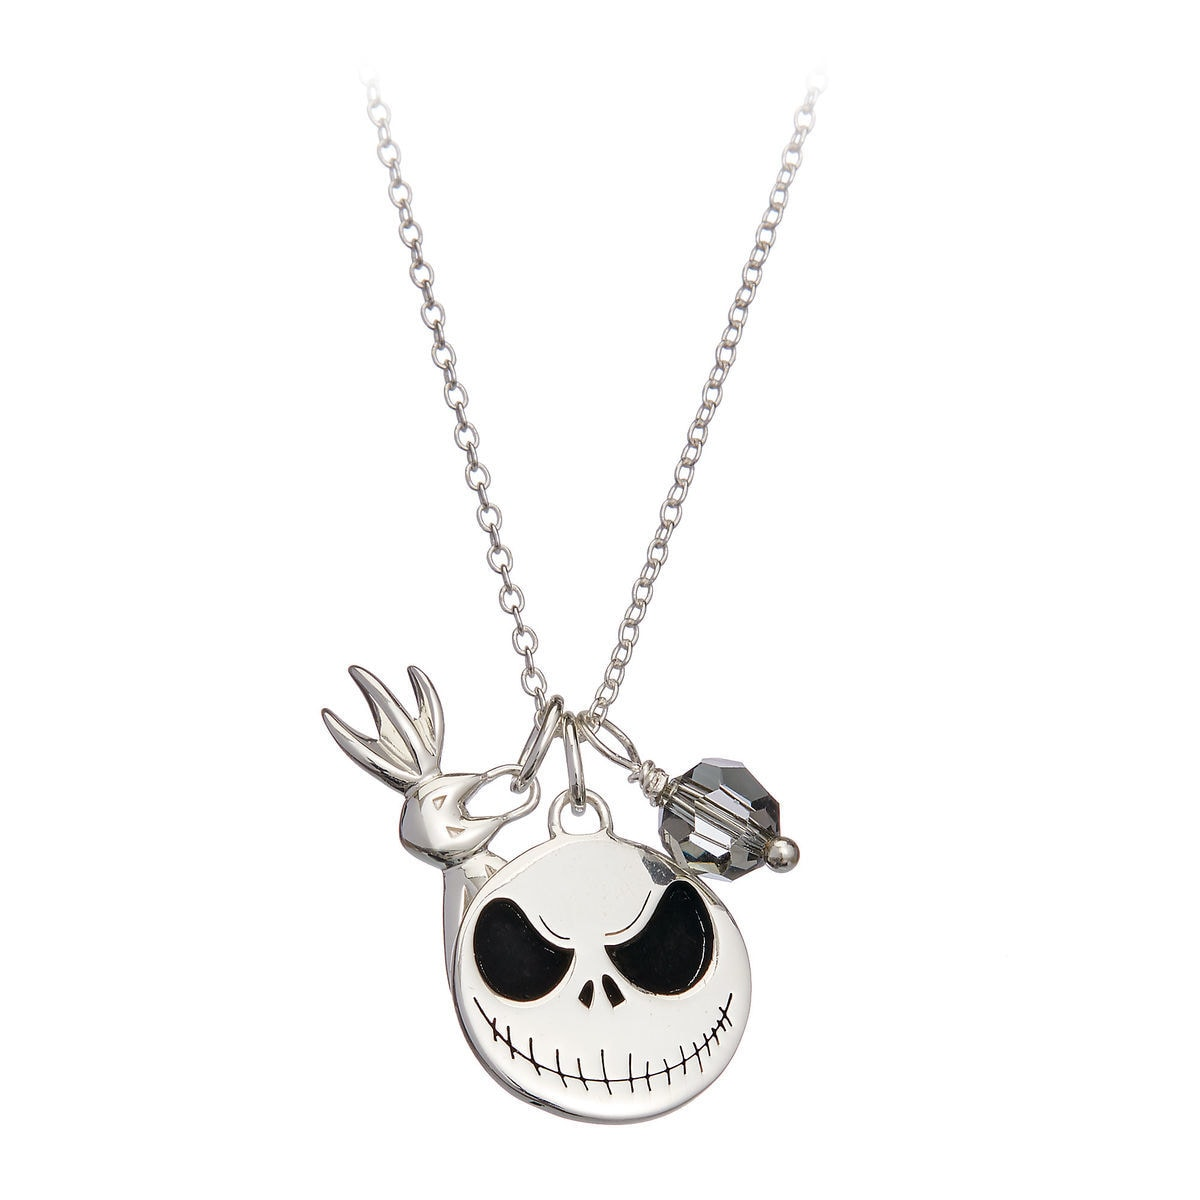 The Nightmare Before Christmas Necklace | shopDisney